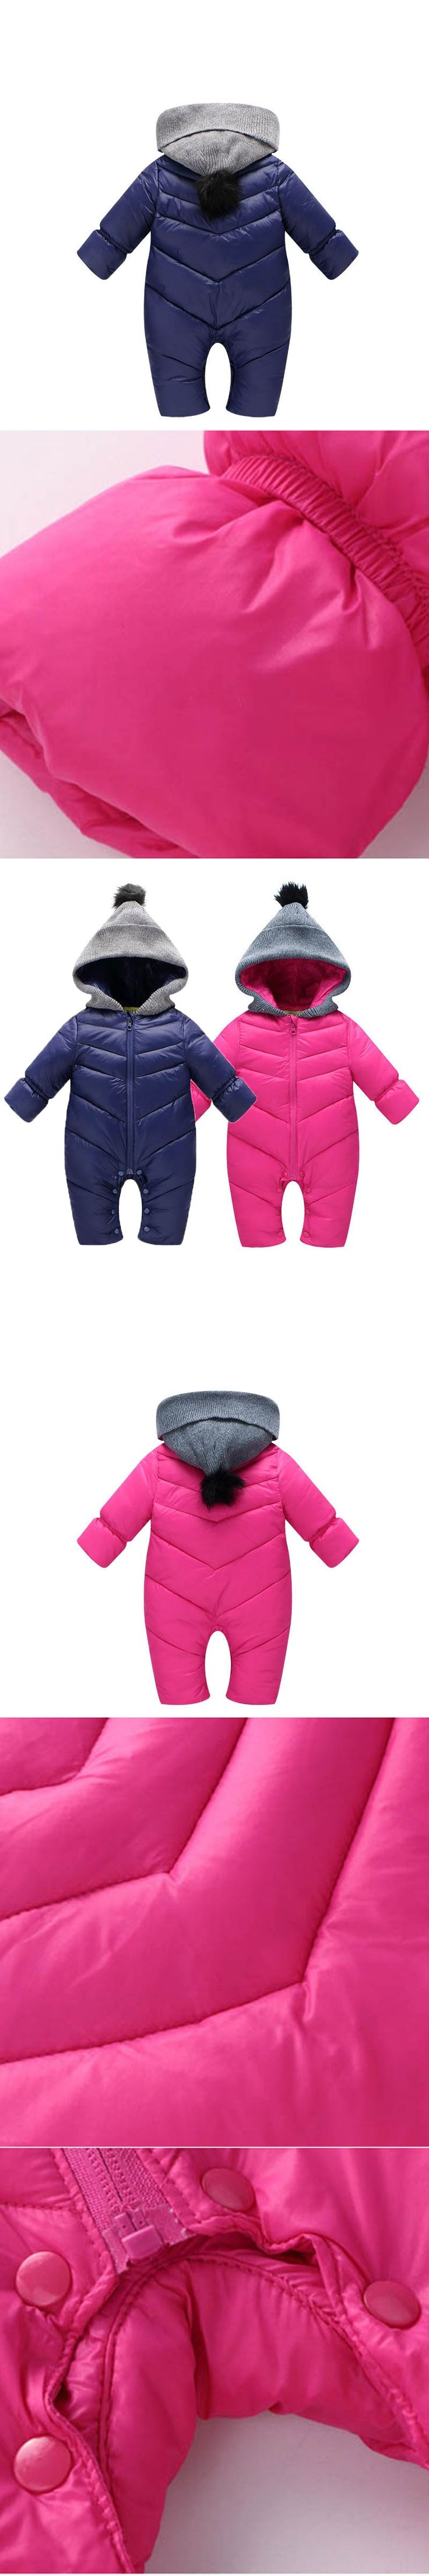 2017 Winter Baby Thick Warm Rompers Pink Coverall Hooded Romper Jumpsuit Baby Girl Boy Snowsuit Coat